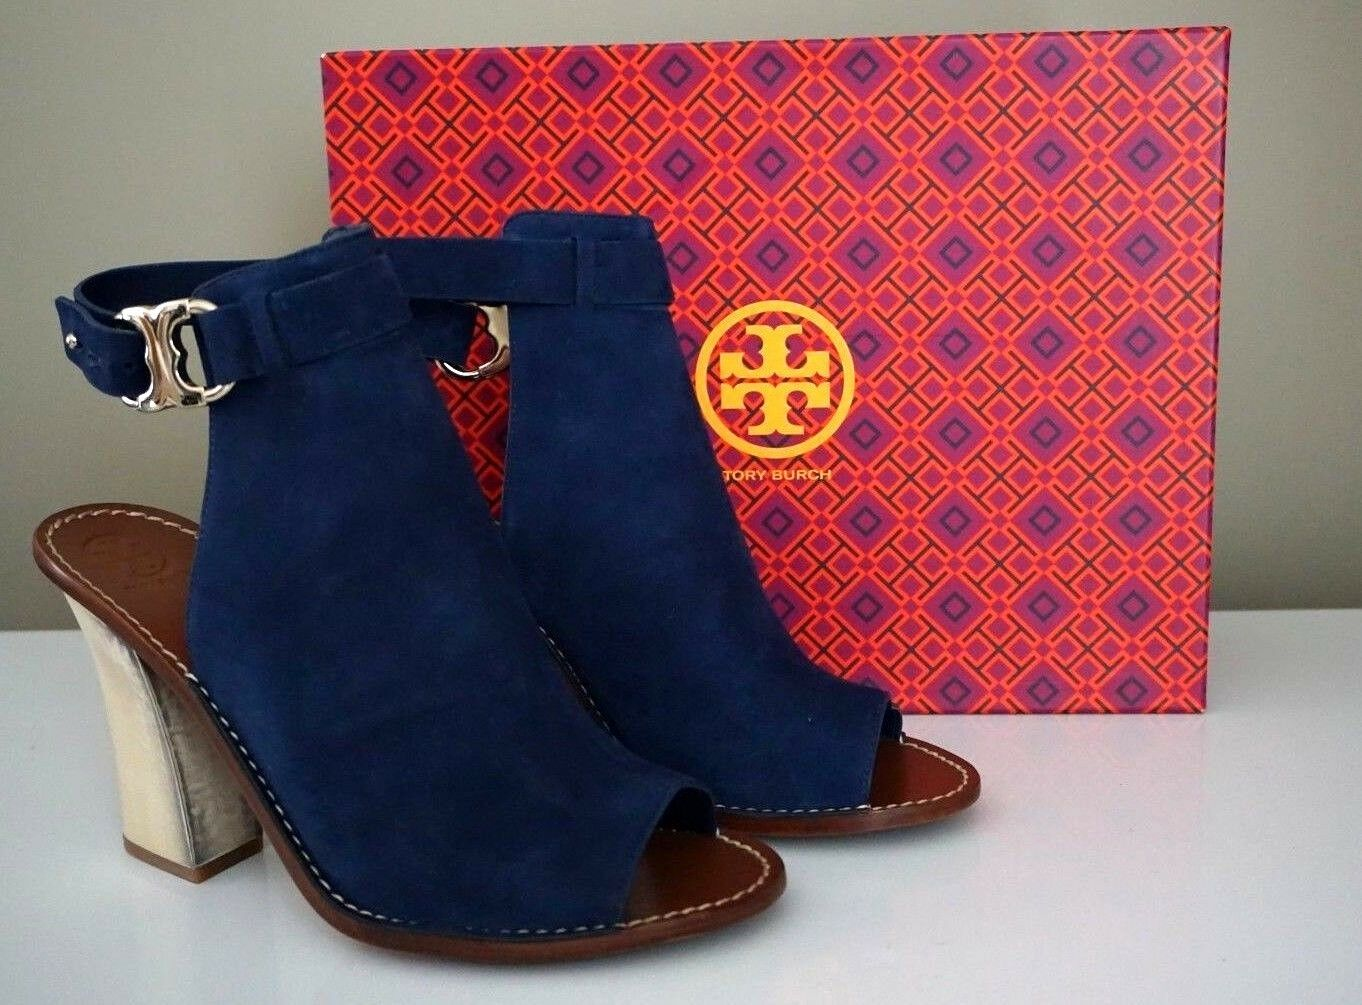 Tory Burch Gemini Link 110mm Open-Toe Navy Suede Sandal Booties Size 10.5